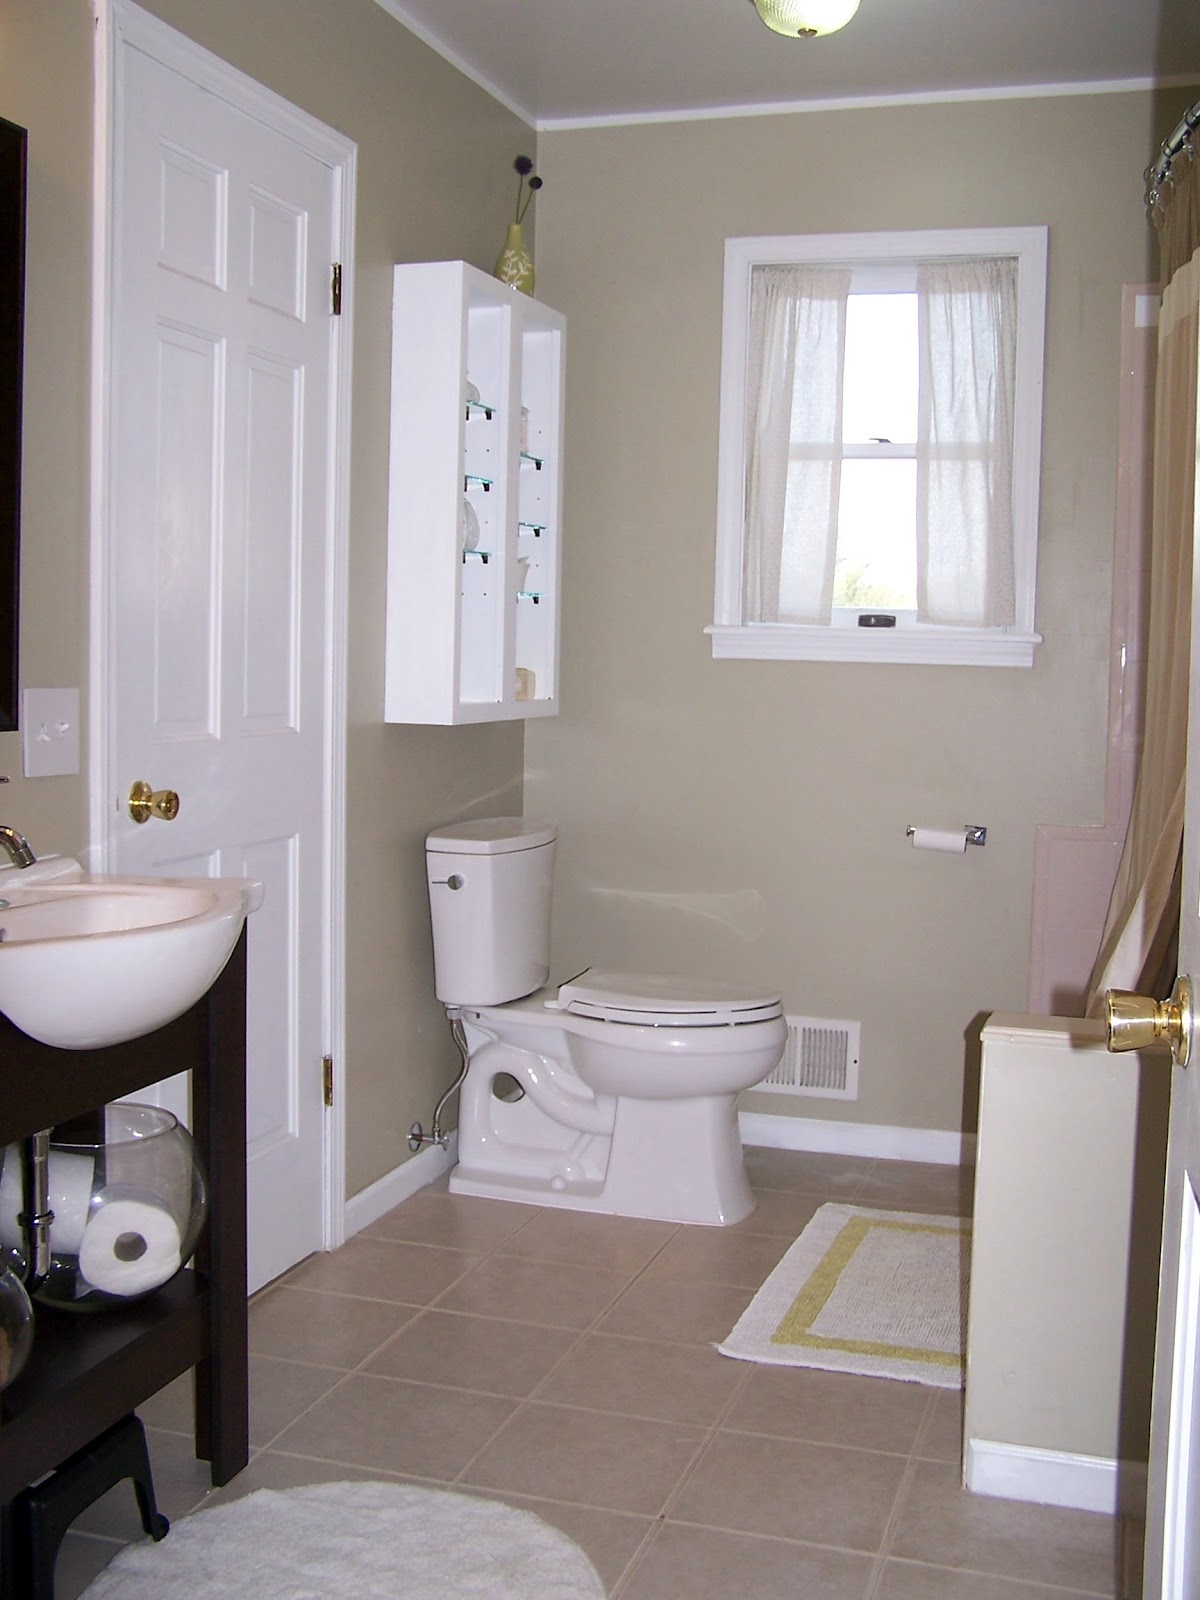 Bathroom Ideas For Remodeling: Sylvie Liv: Bathroom Before And After